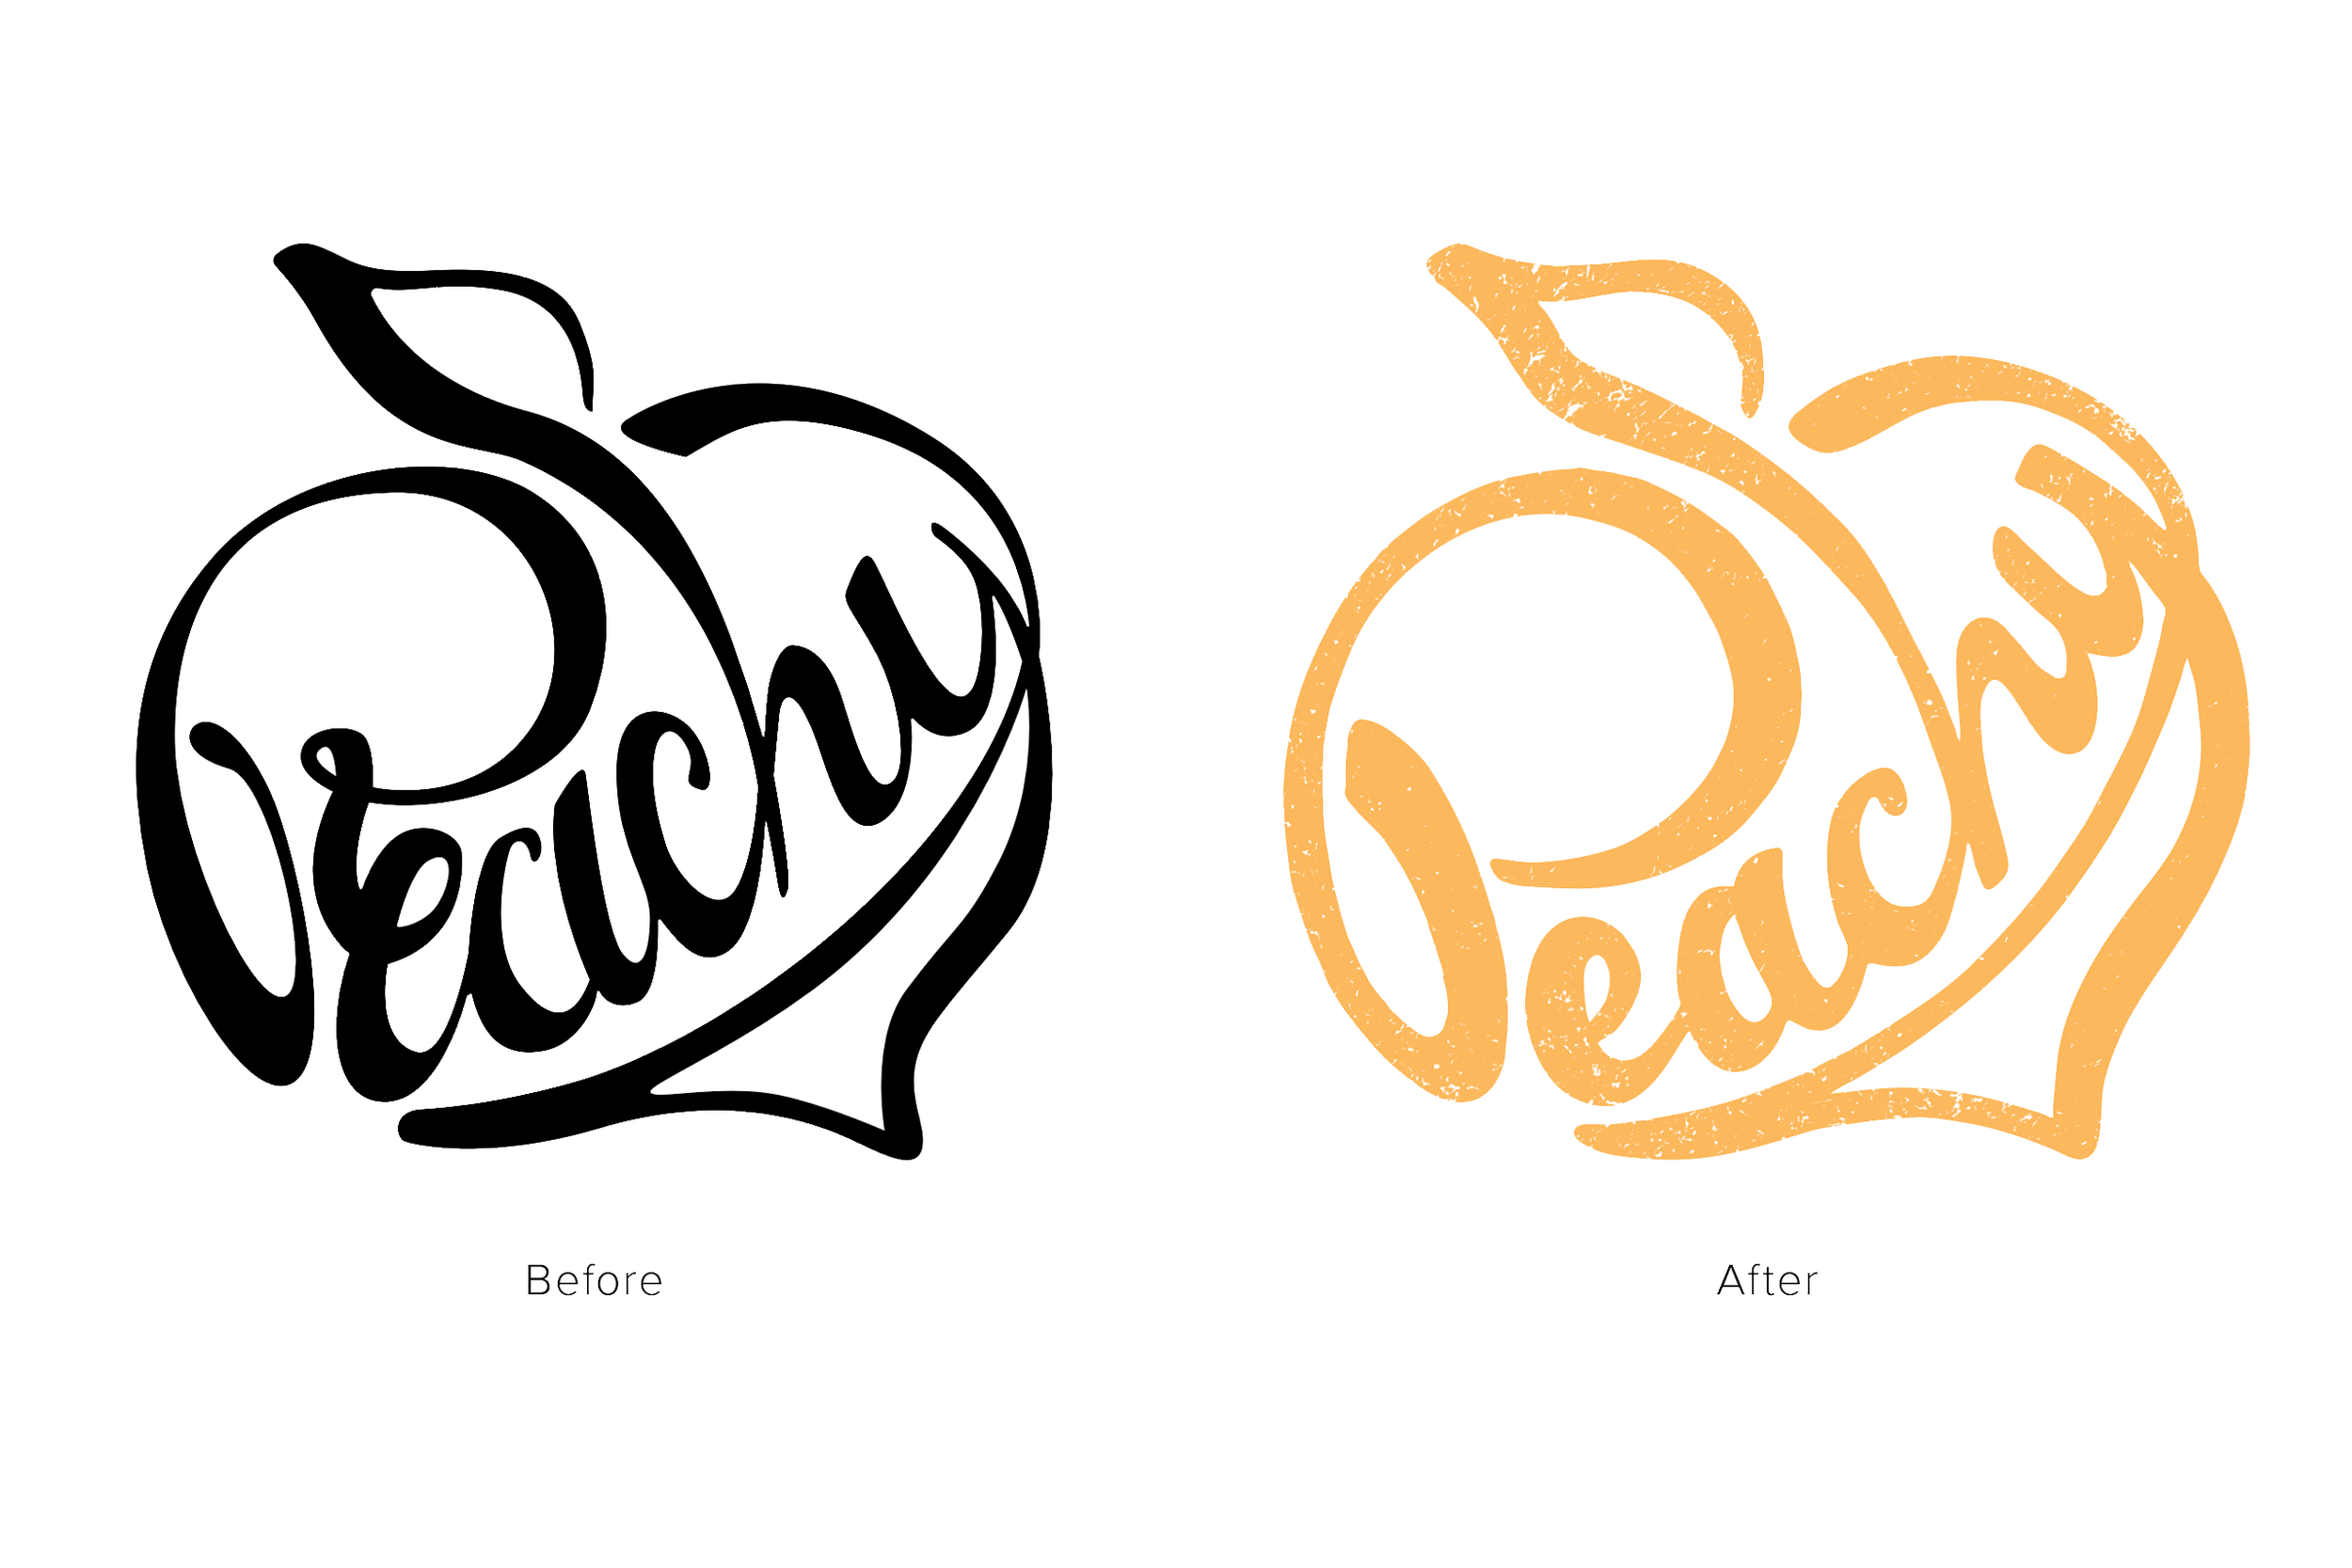 Digitized_Peachy.png